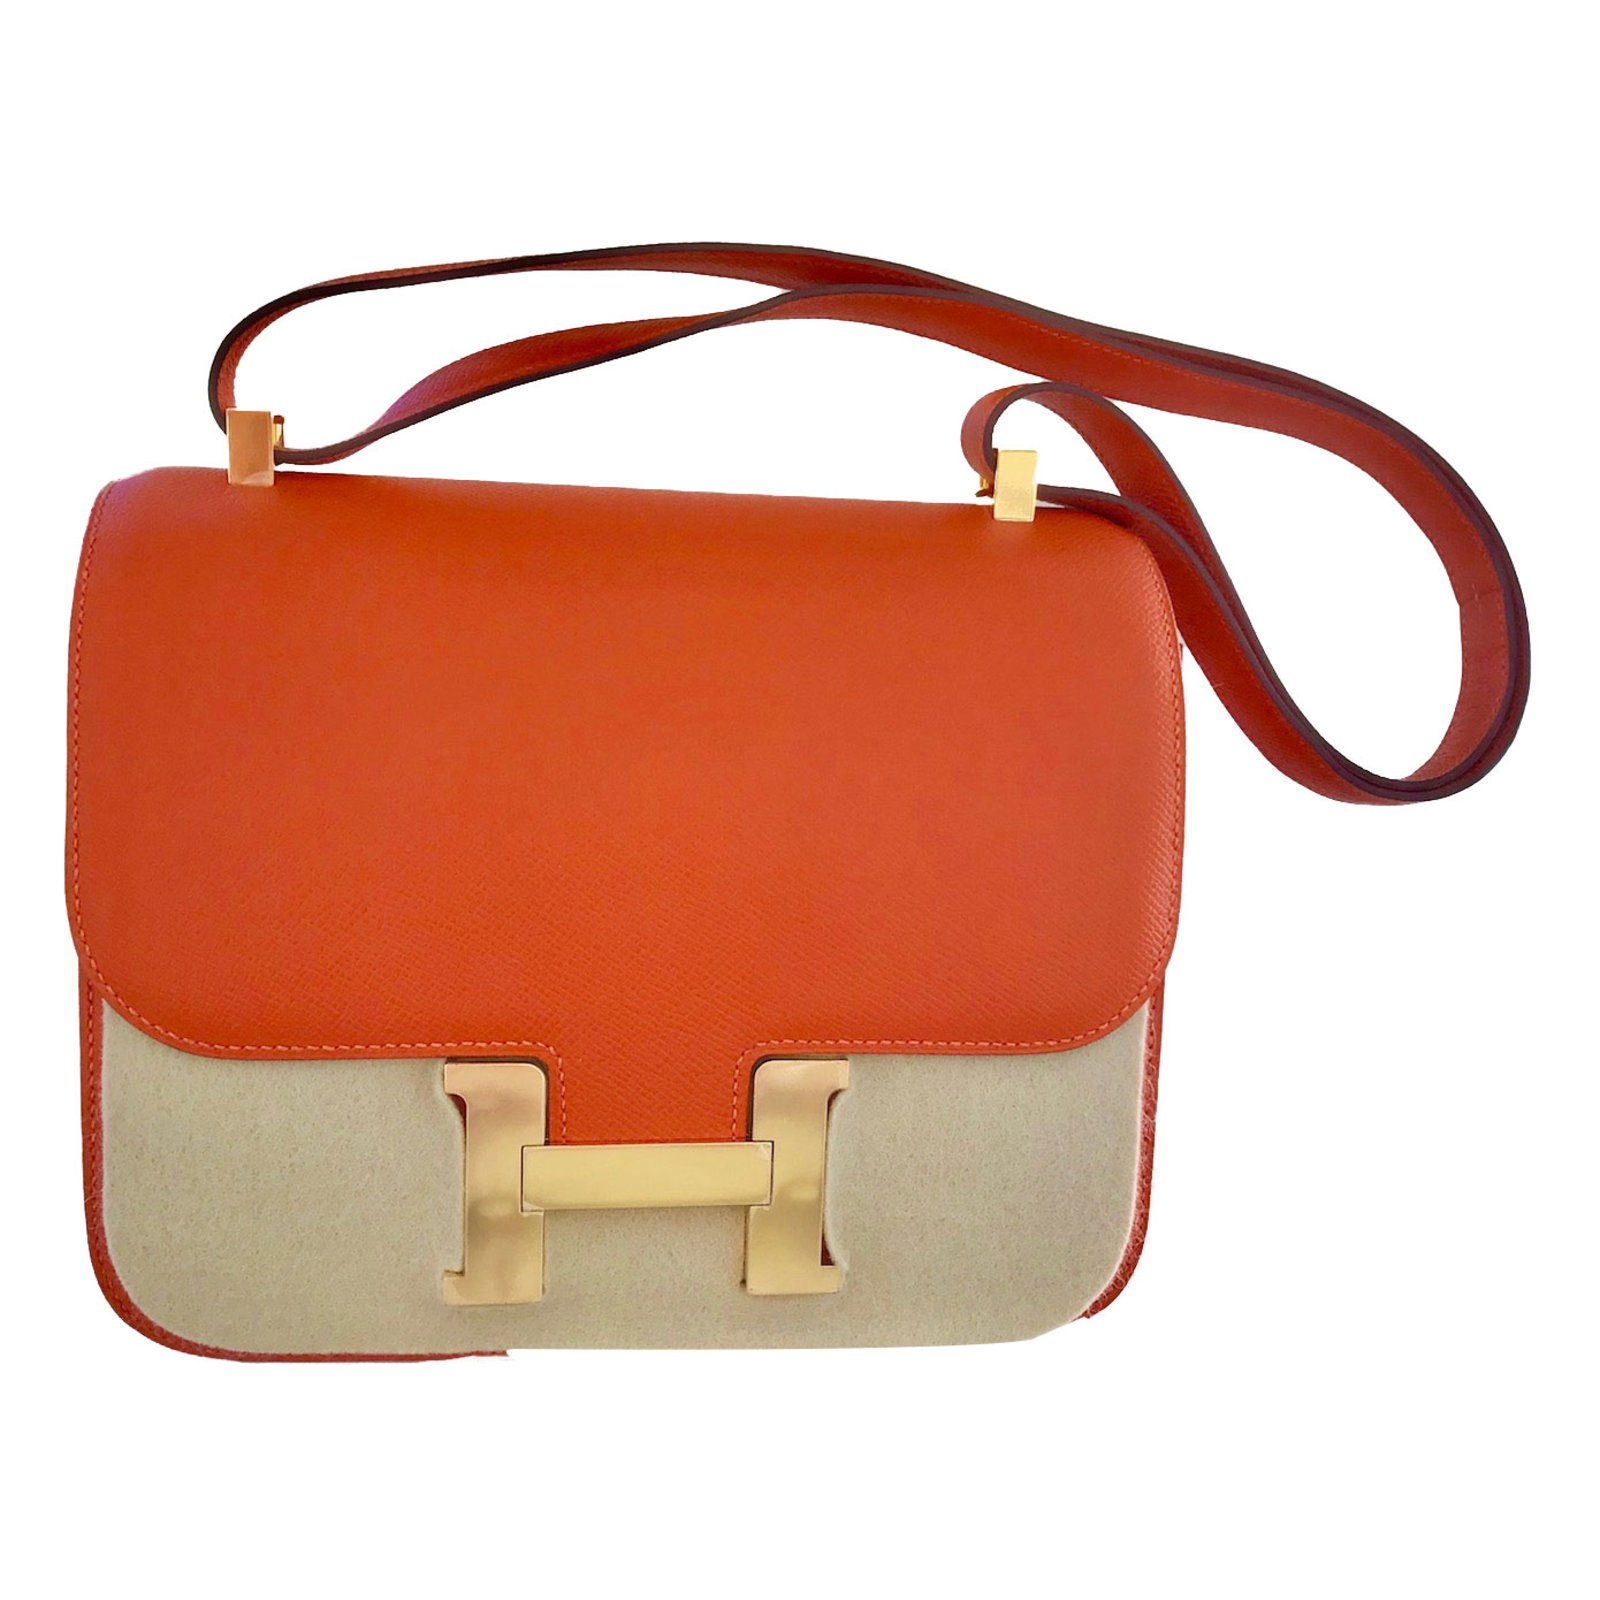 a6773f1cbf88 ... coupon for hermès constance handbags leather orange ref.72953 dbcc7  dbde8 ...